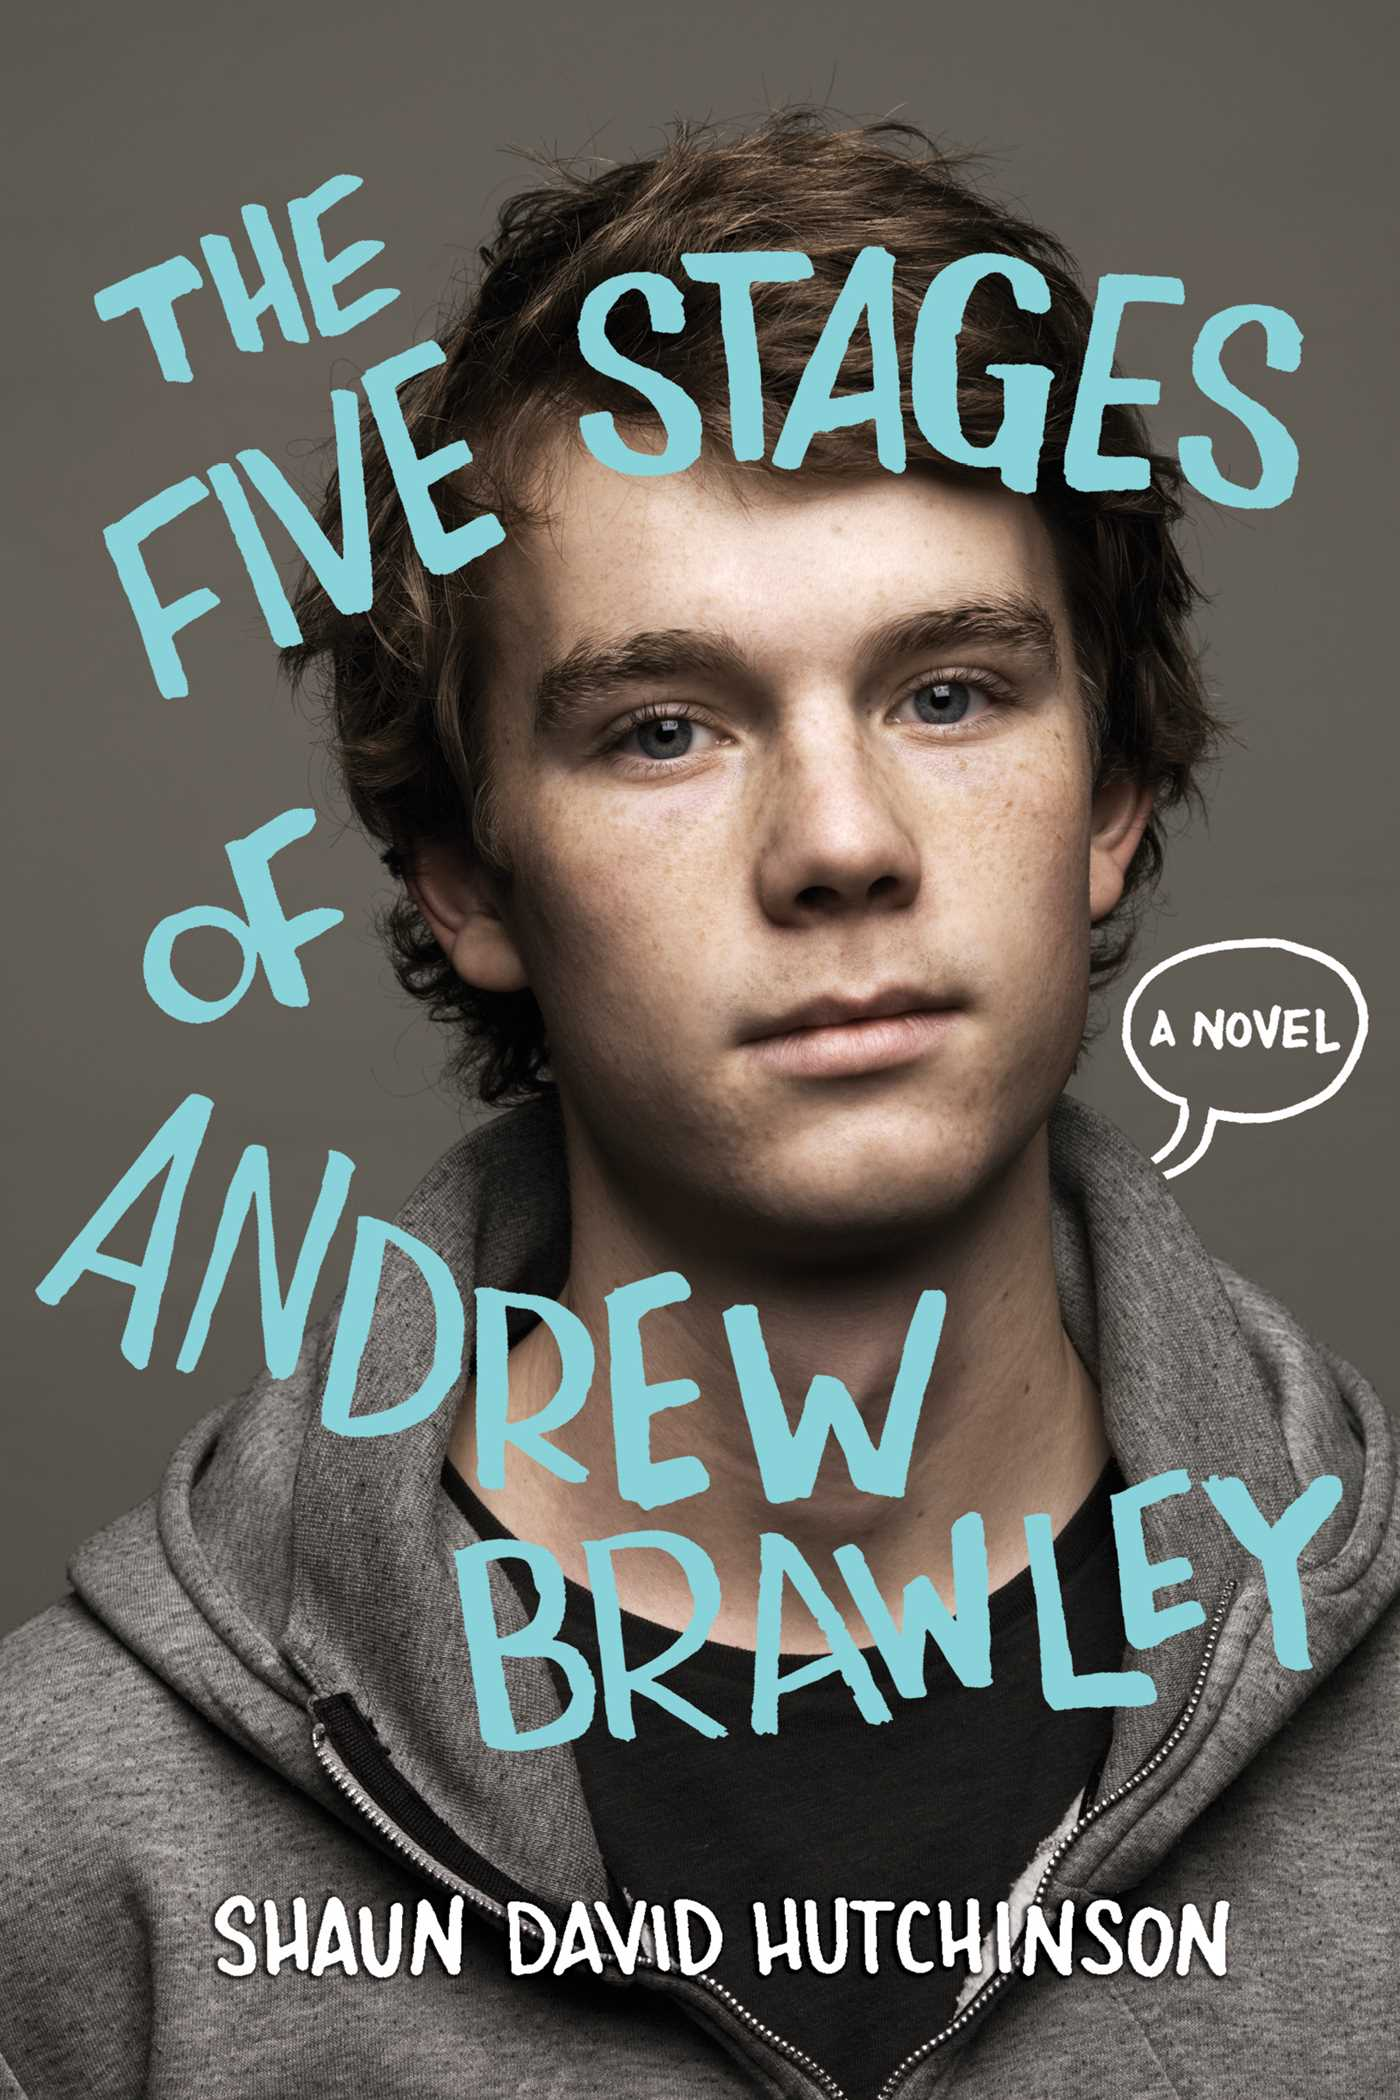 Five stages of andrew brawley 9781481403108 hr